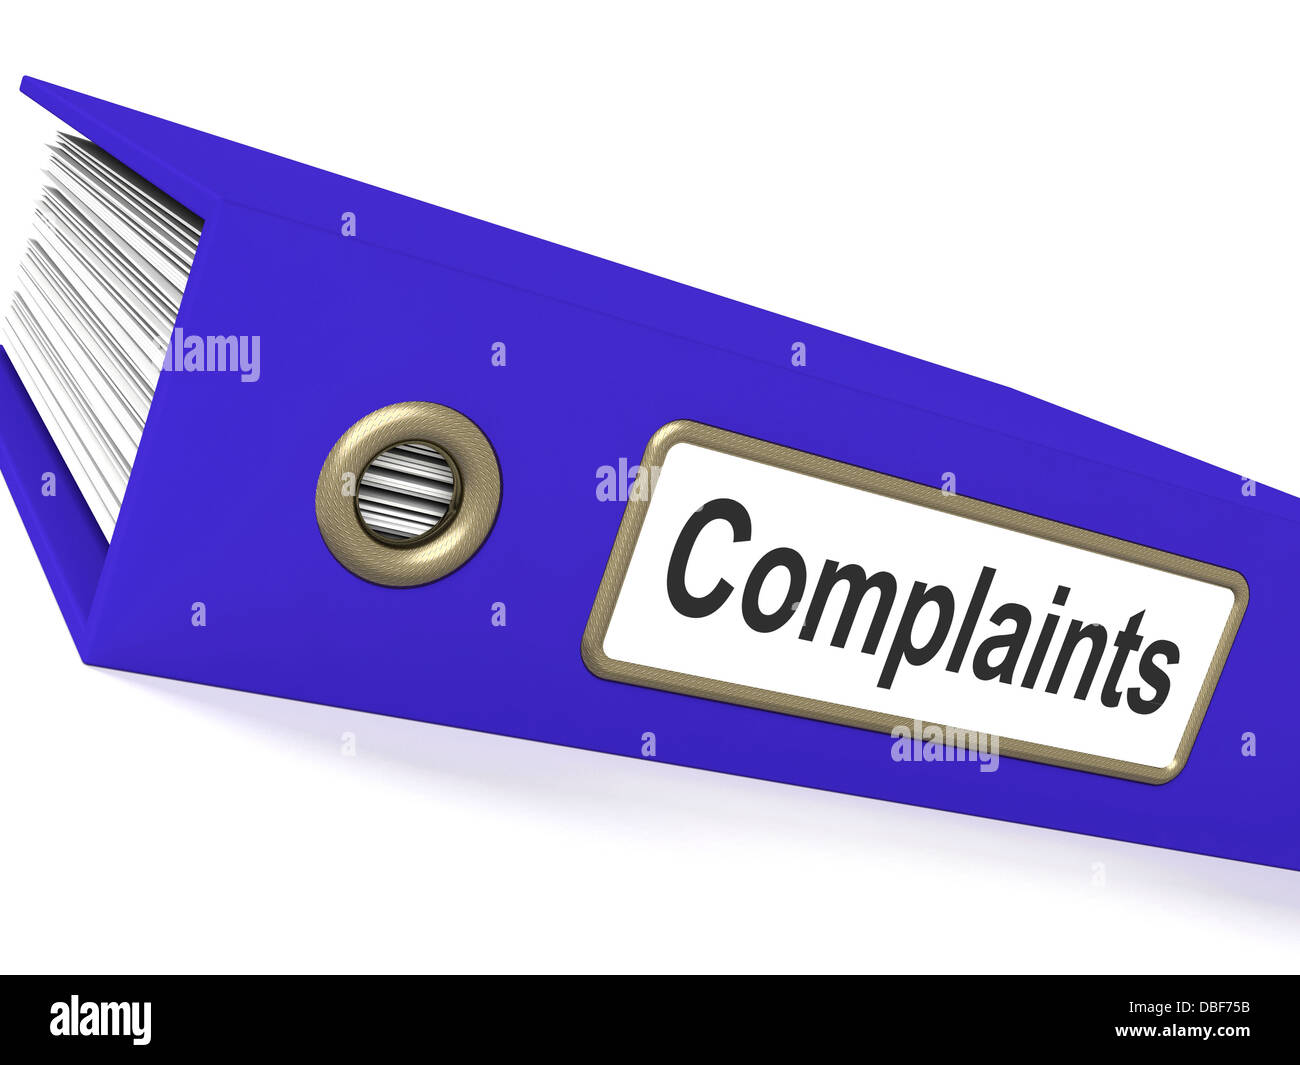 Complaints File Shows Complaint Reports And Records - Stock Image